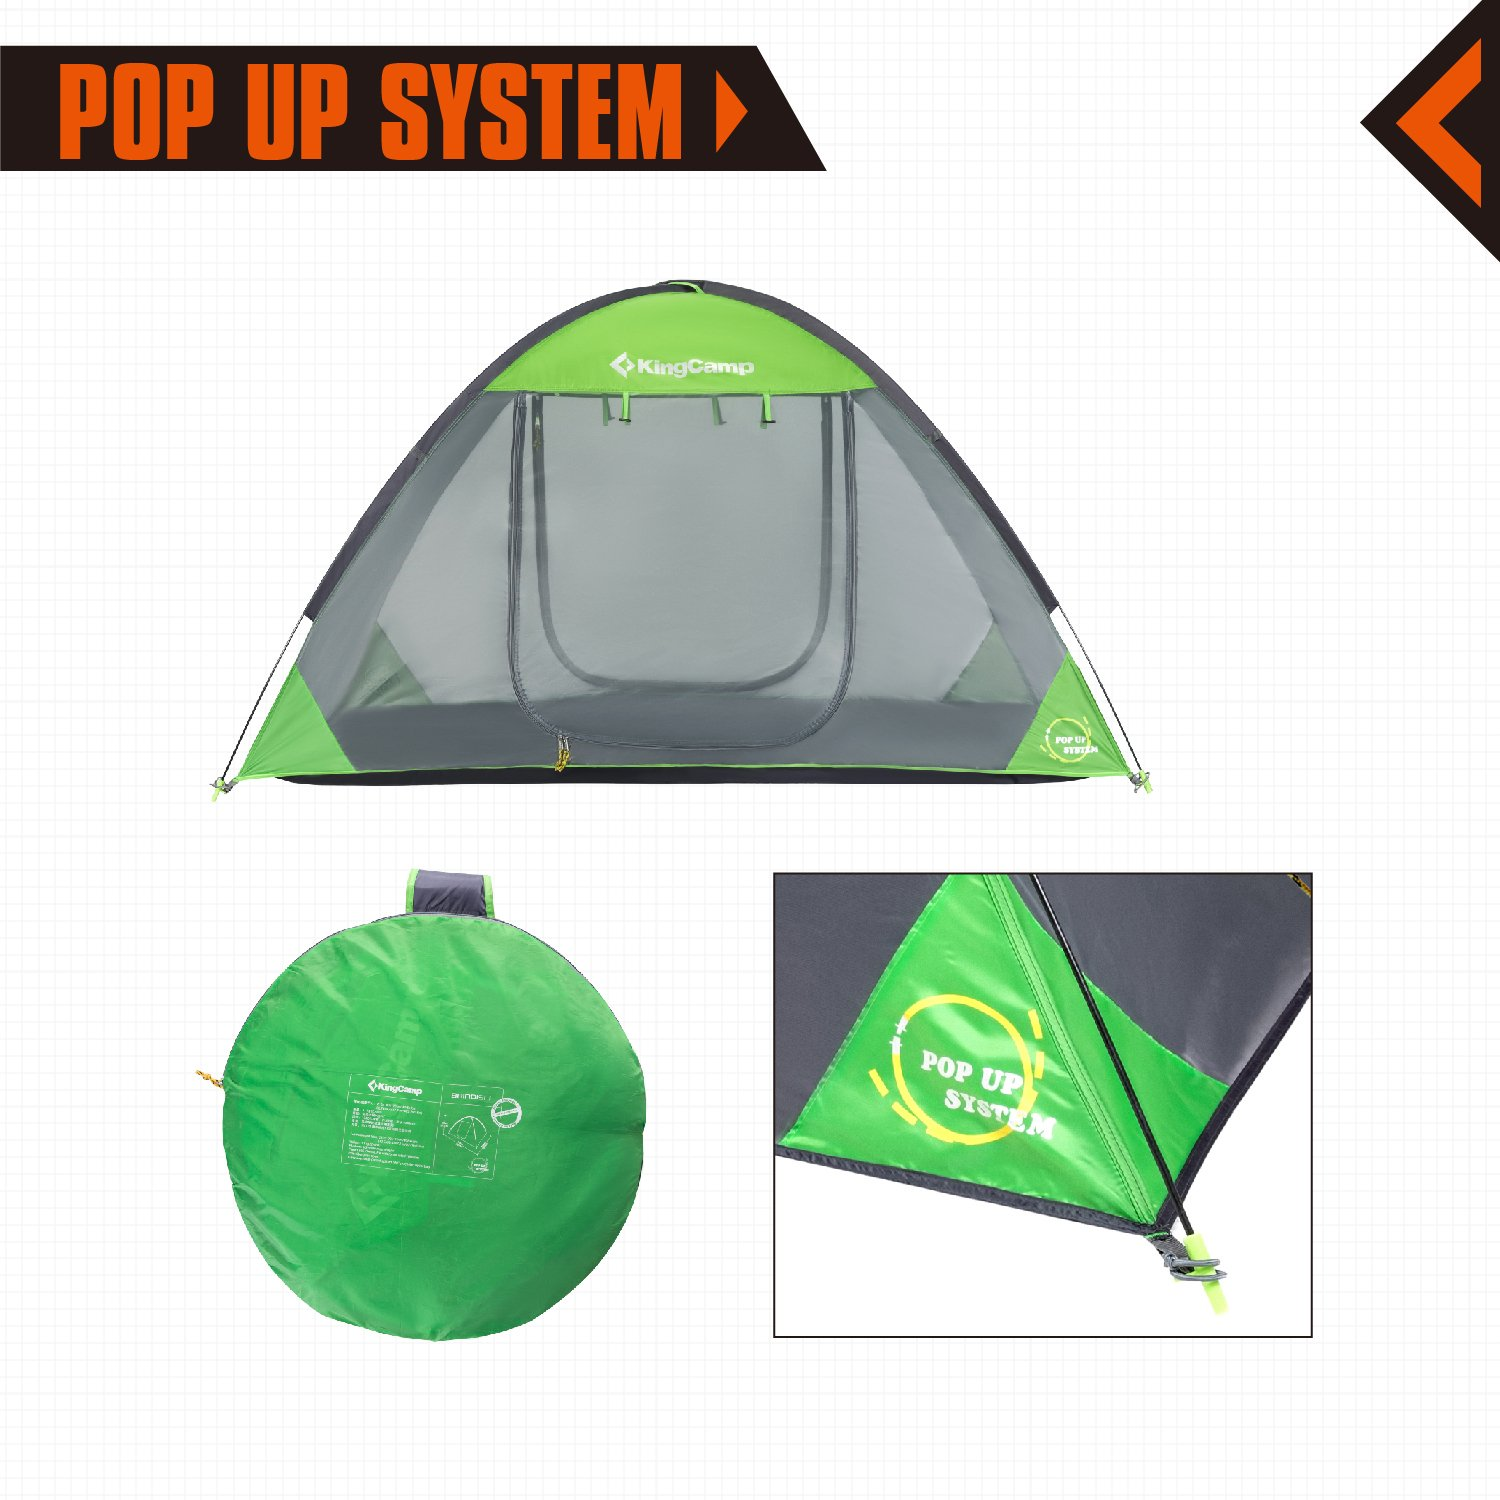 KingCamp Pop-up Free-standing Mesh Tent Breathable Mosquito-Net 1-Person Indoor and Outdoor Play Tent